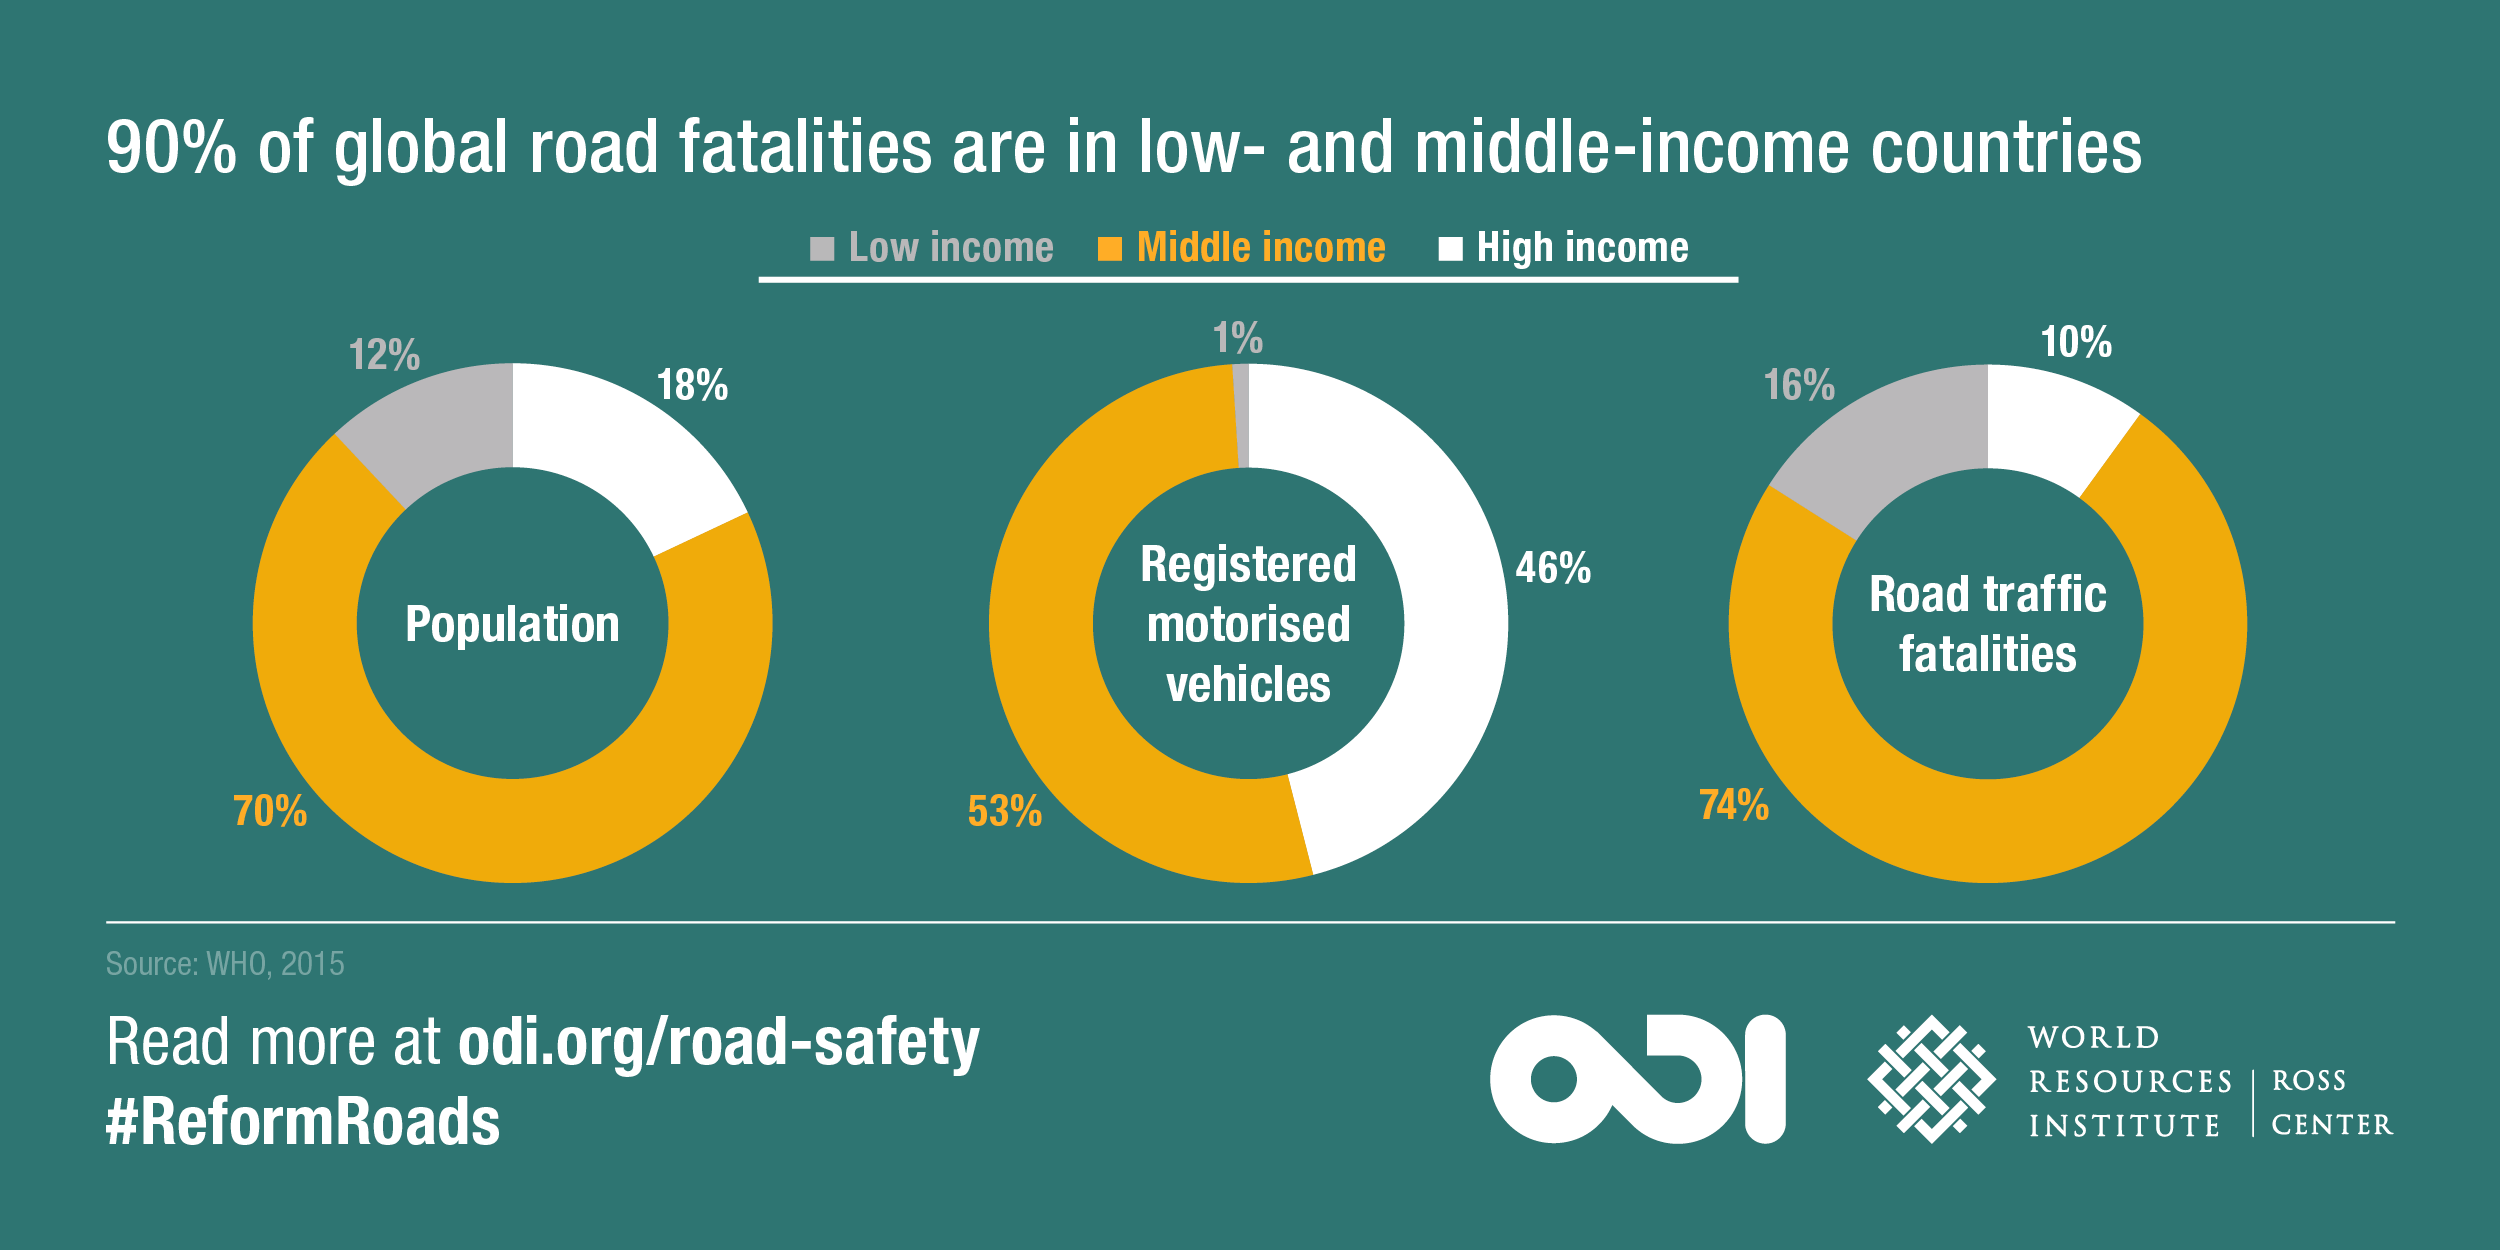 90% of global road fatalities are in low- and middle-income countries. Image: ODI and WRI